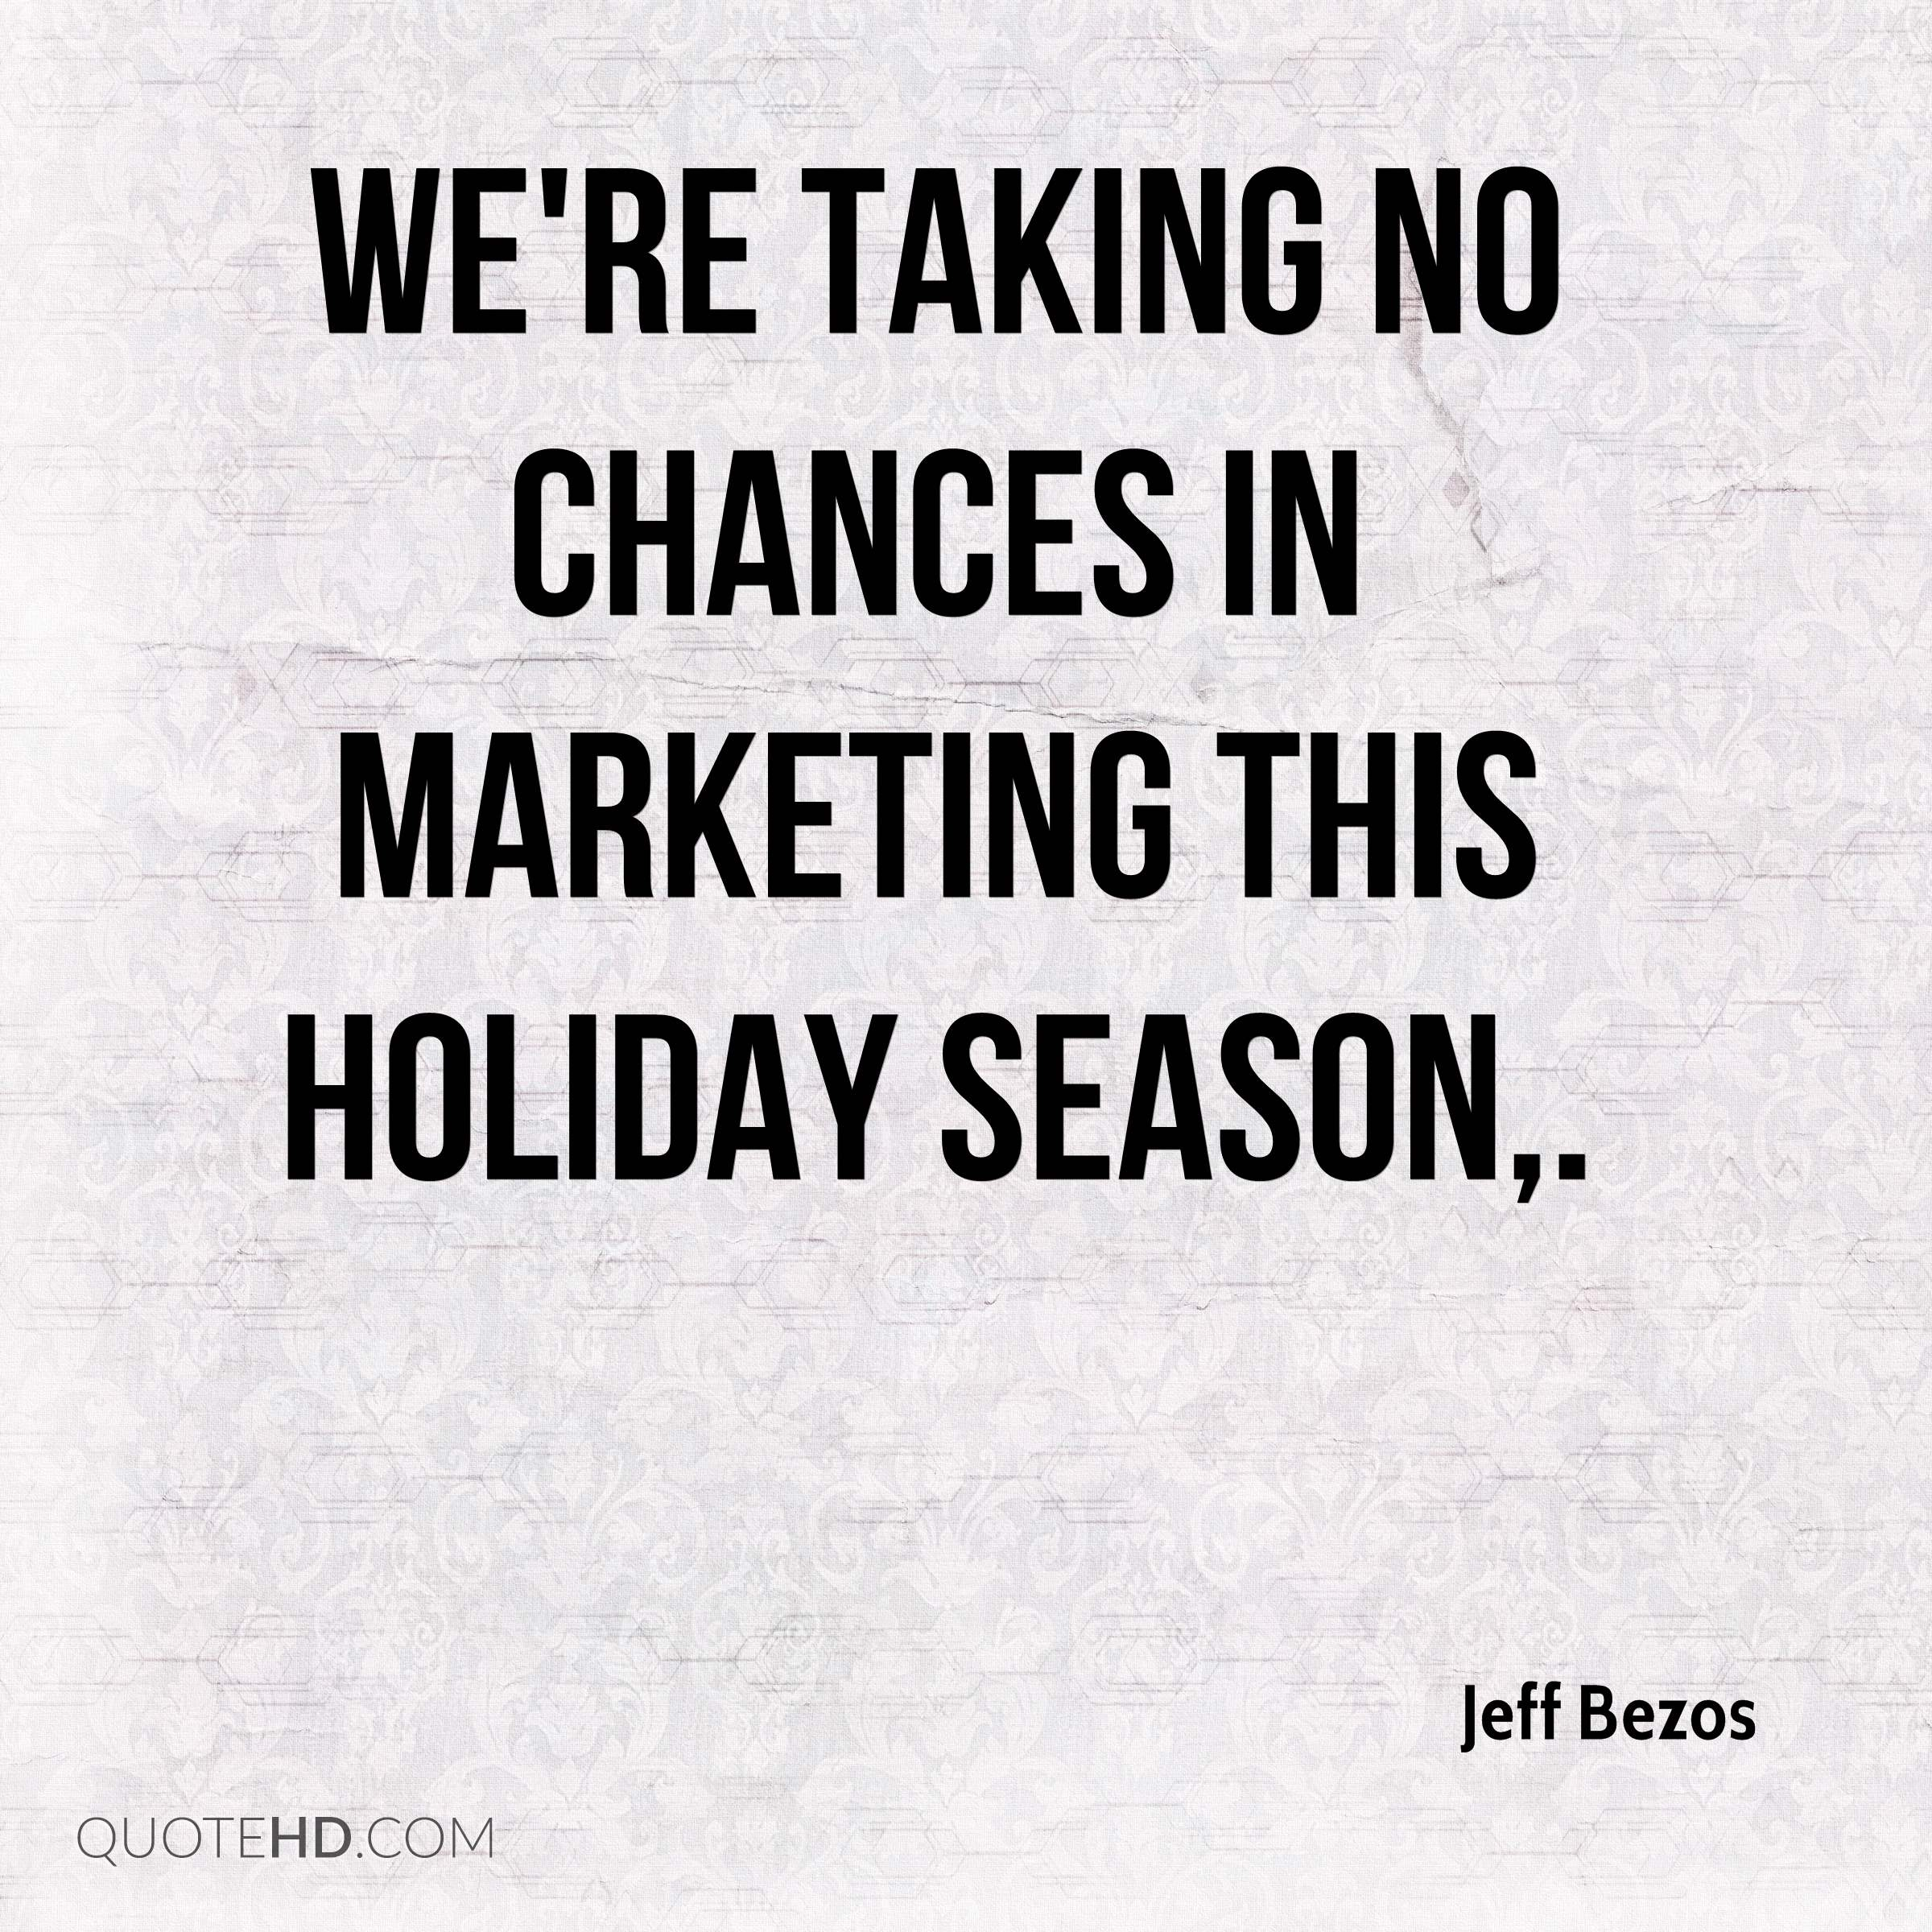 We're taking no chances in marketing this holiday season.